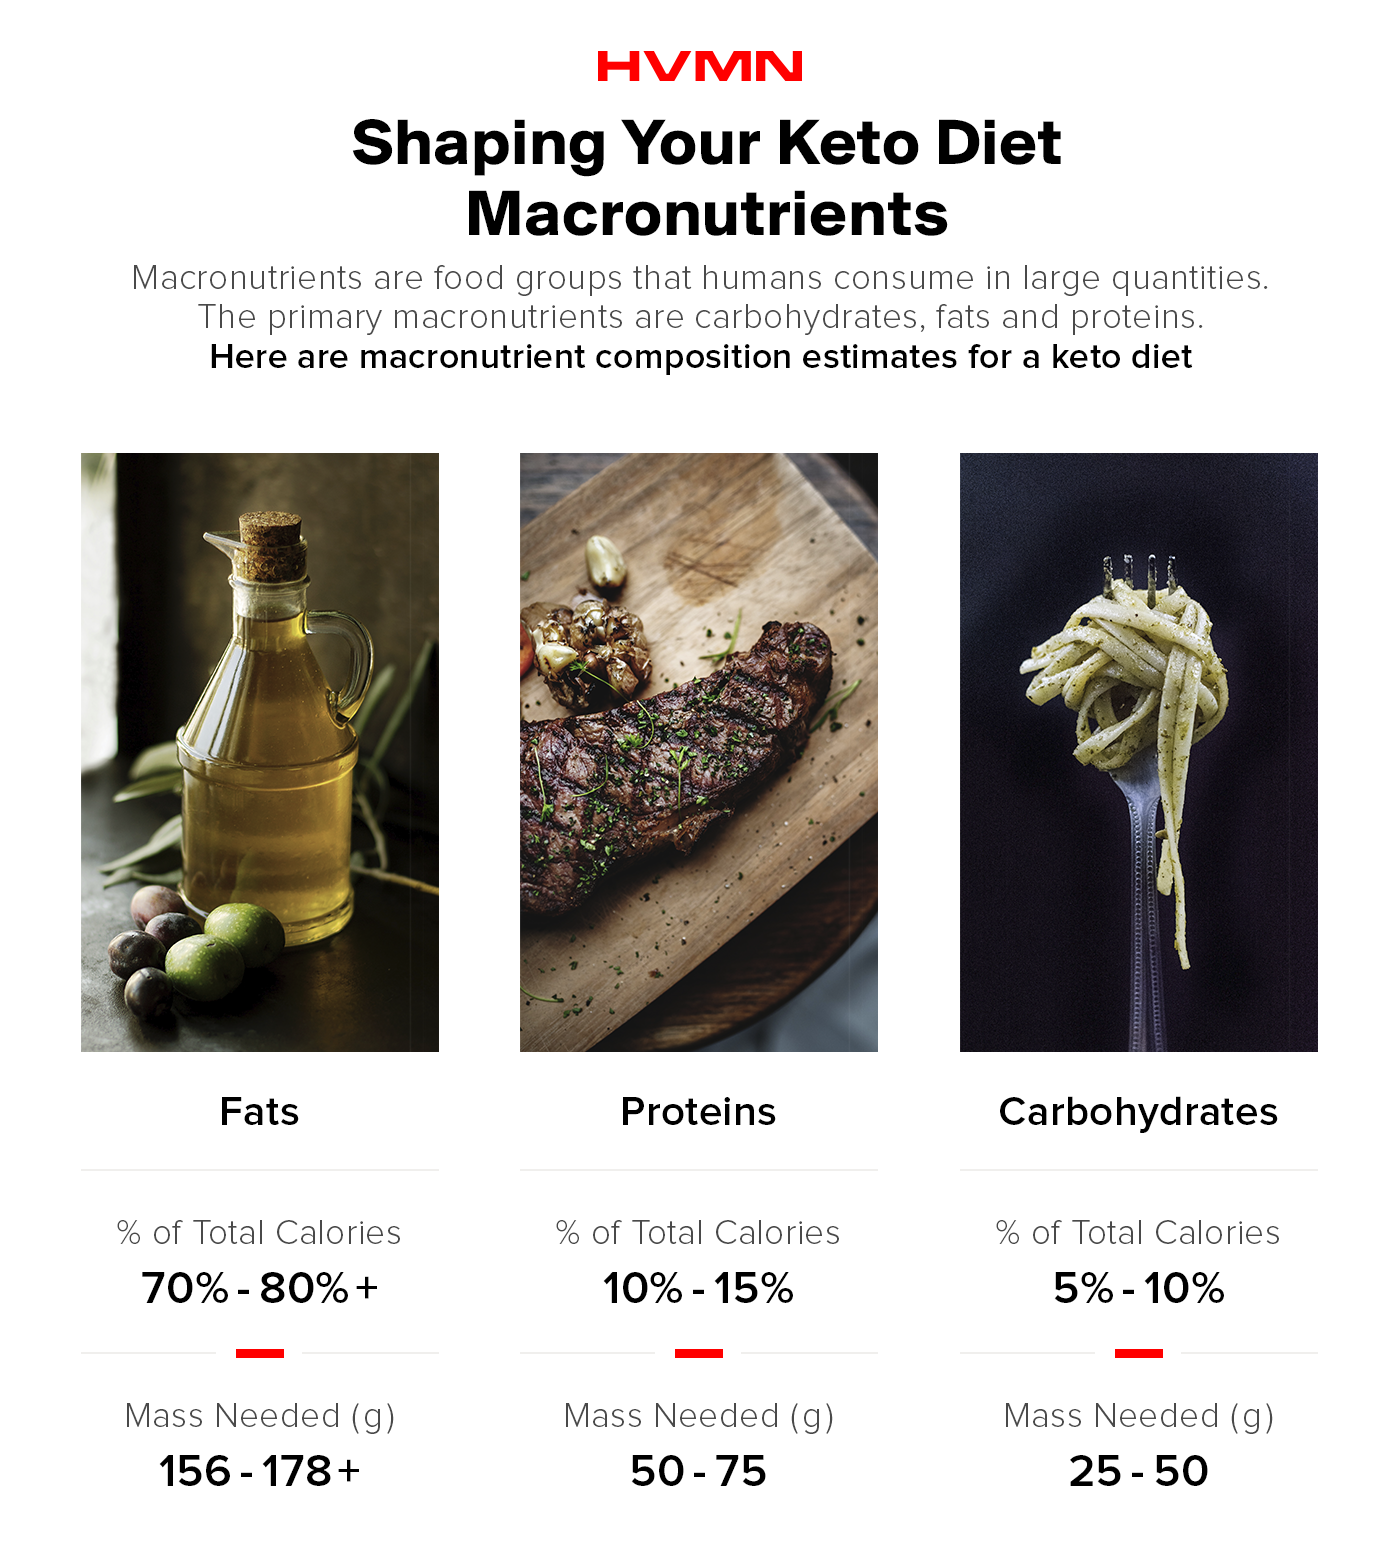 An image of oil, steak and pasta, showing the different macronutrient ratios to try and consume on a keto diet